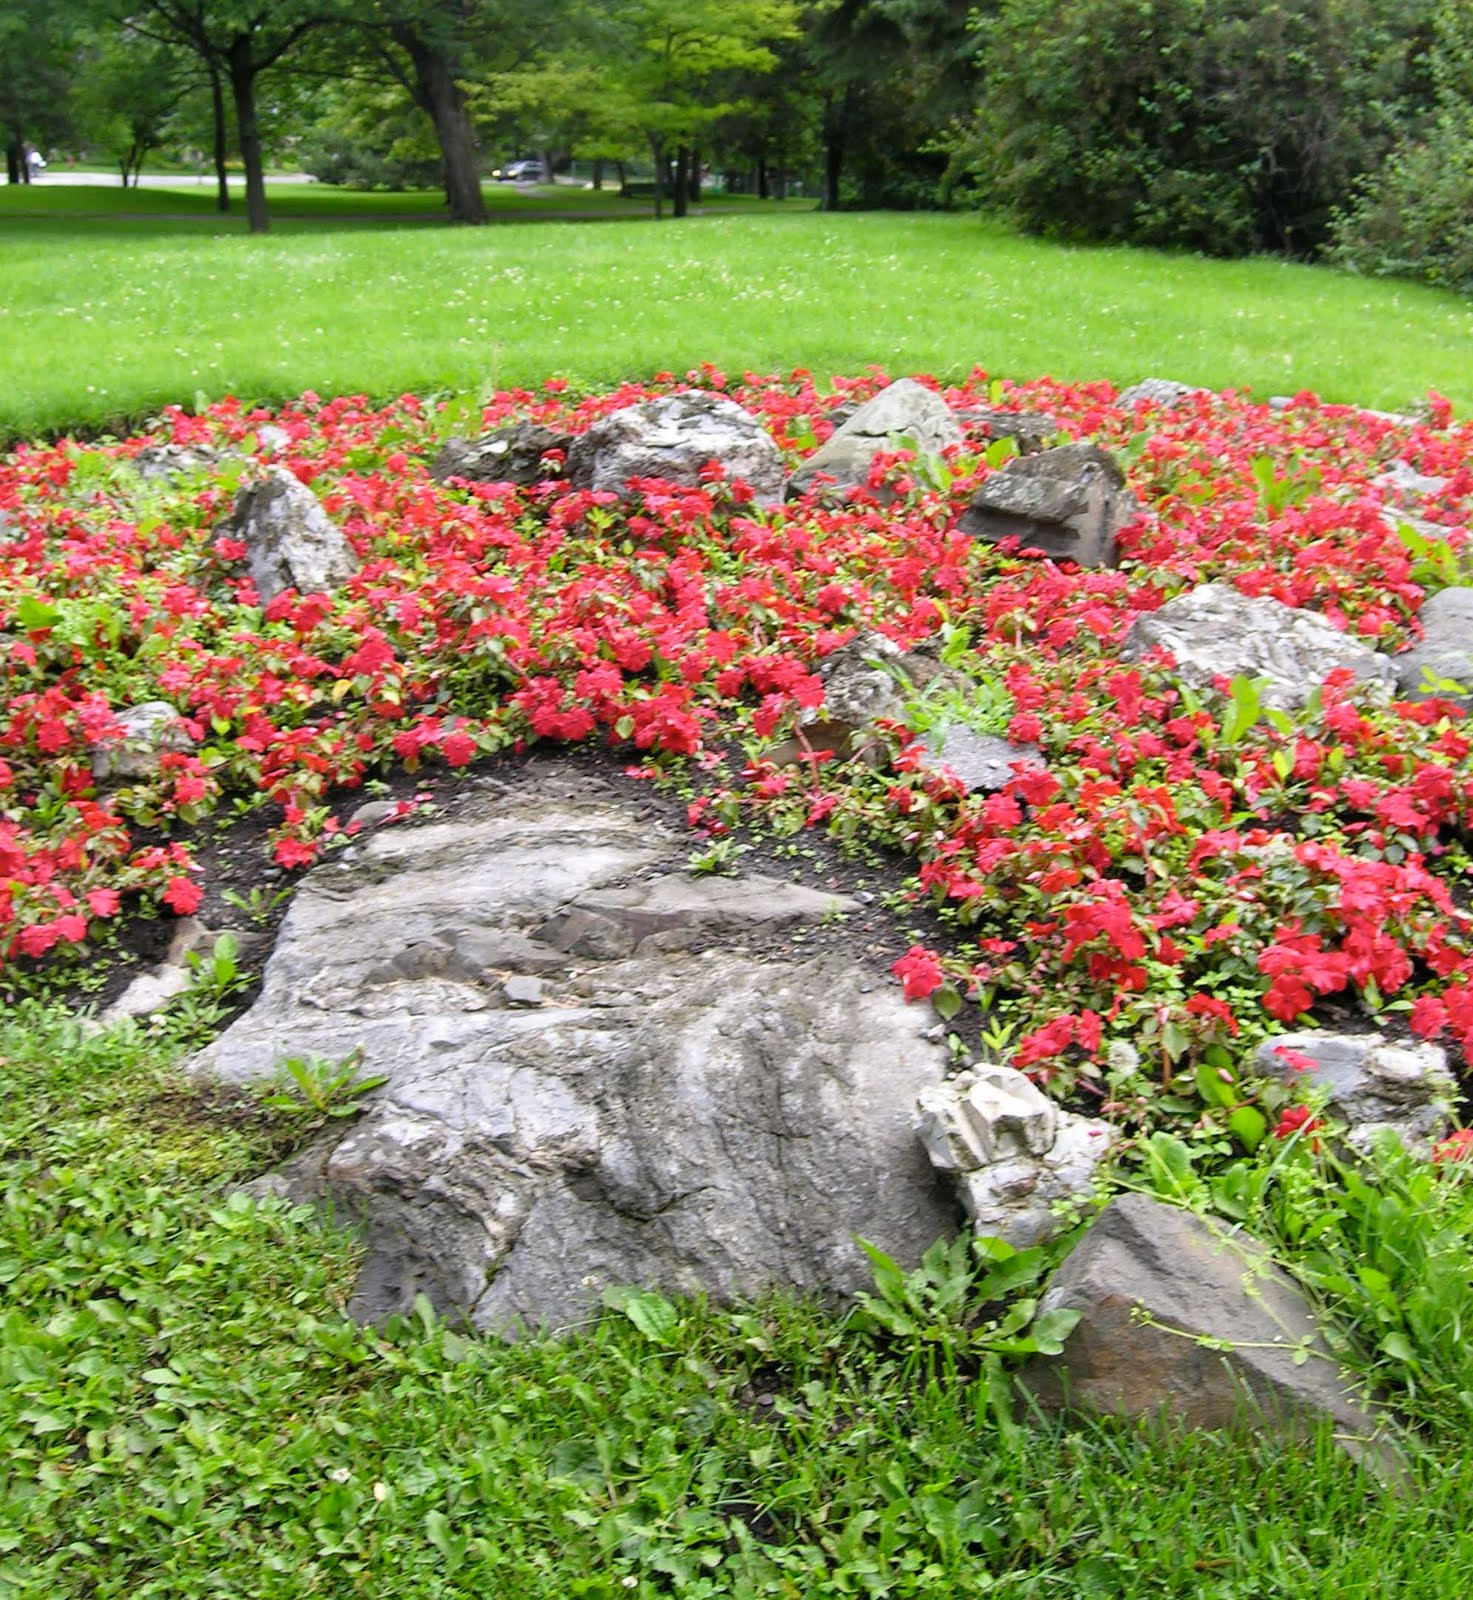 Recreating eden saturday photo alfred joyces garden this year someone also had the bright idea of planting an outcropping of rock with impatiens quite lovely publicscrutiny Image collections